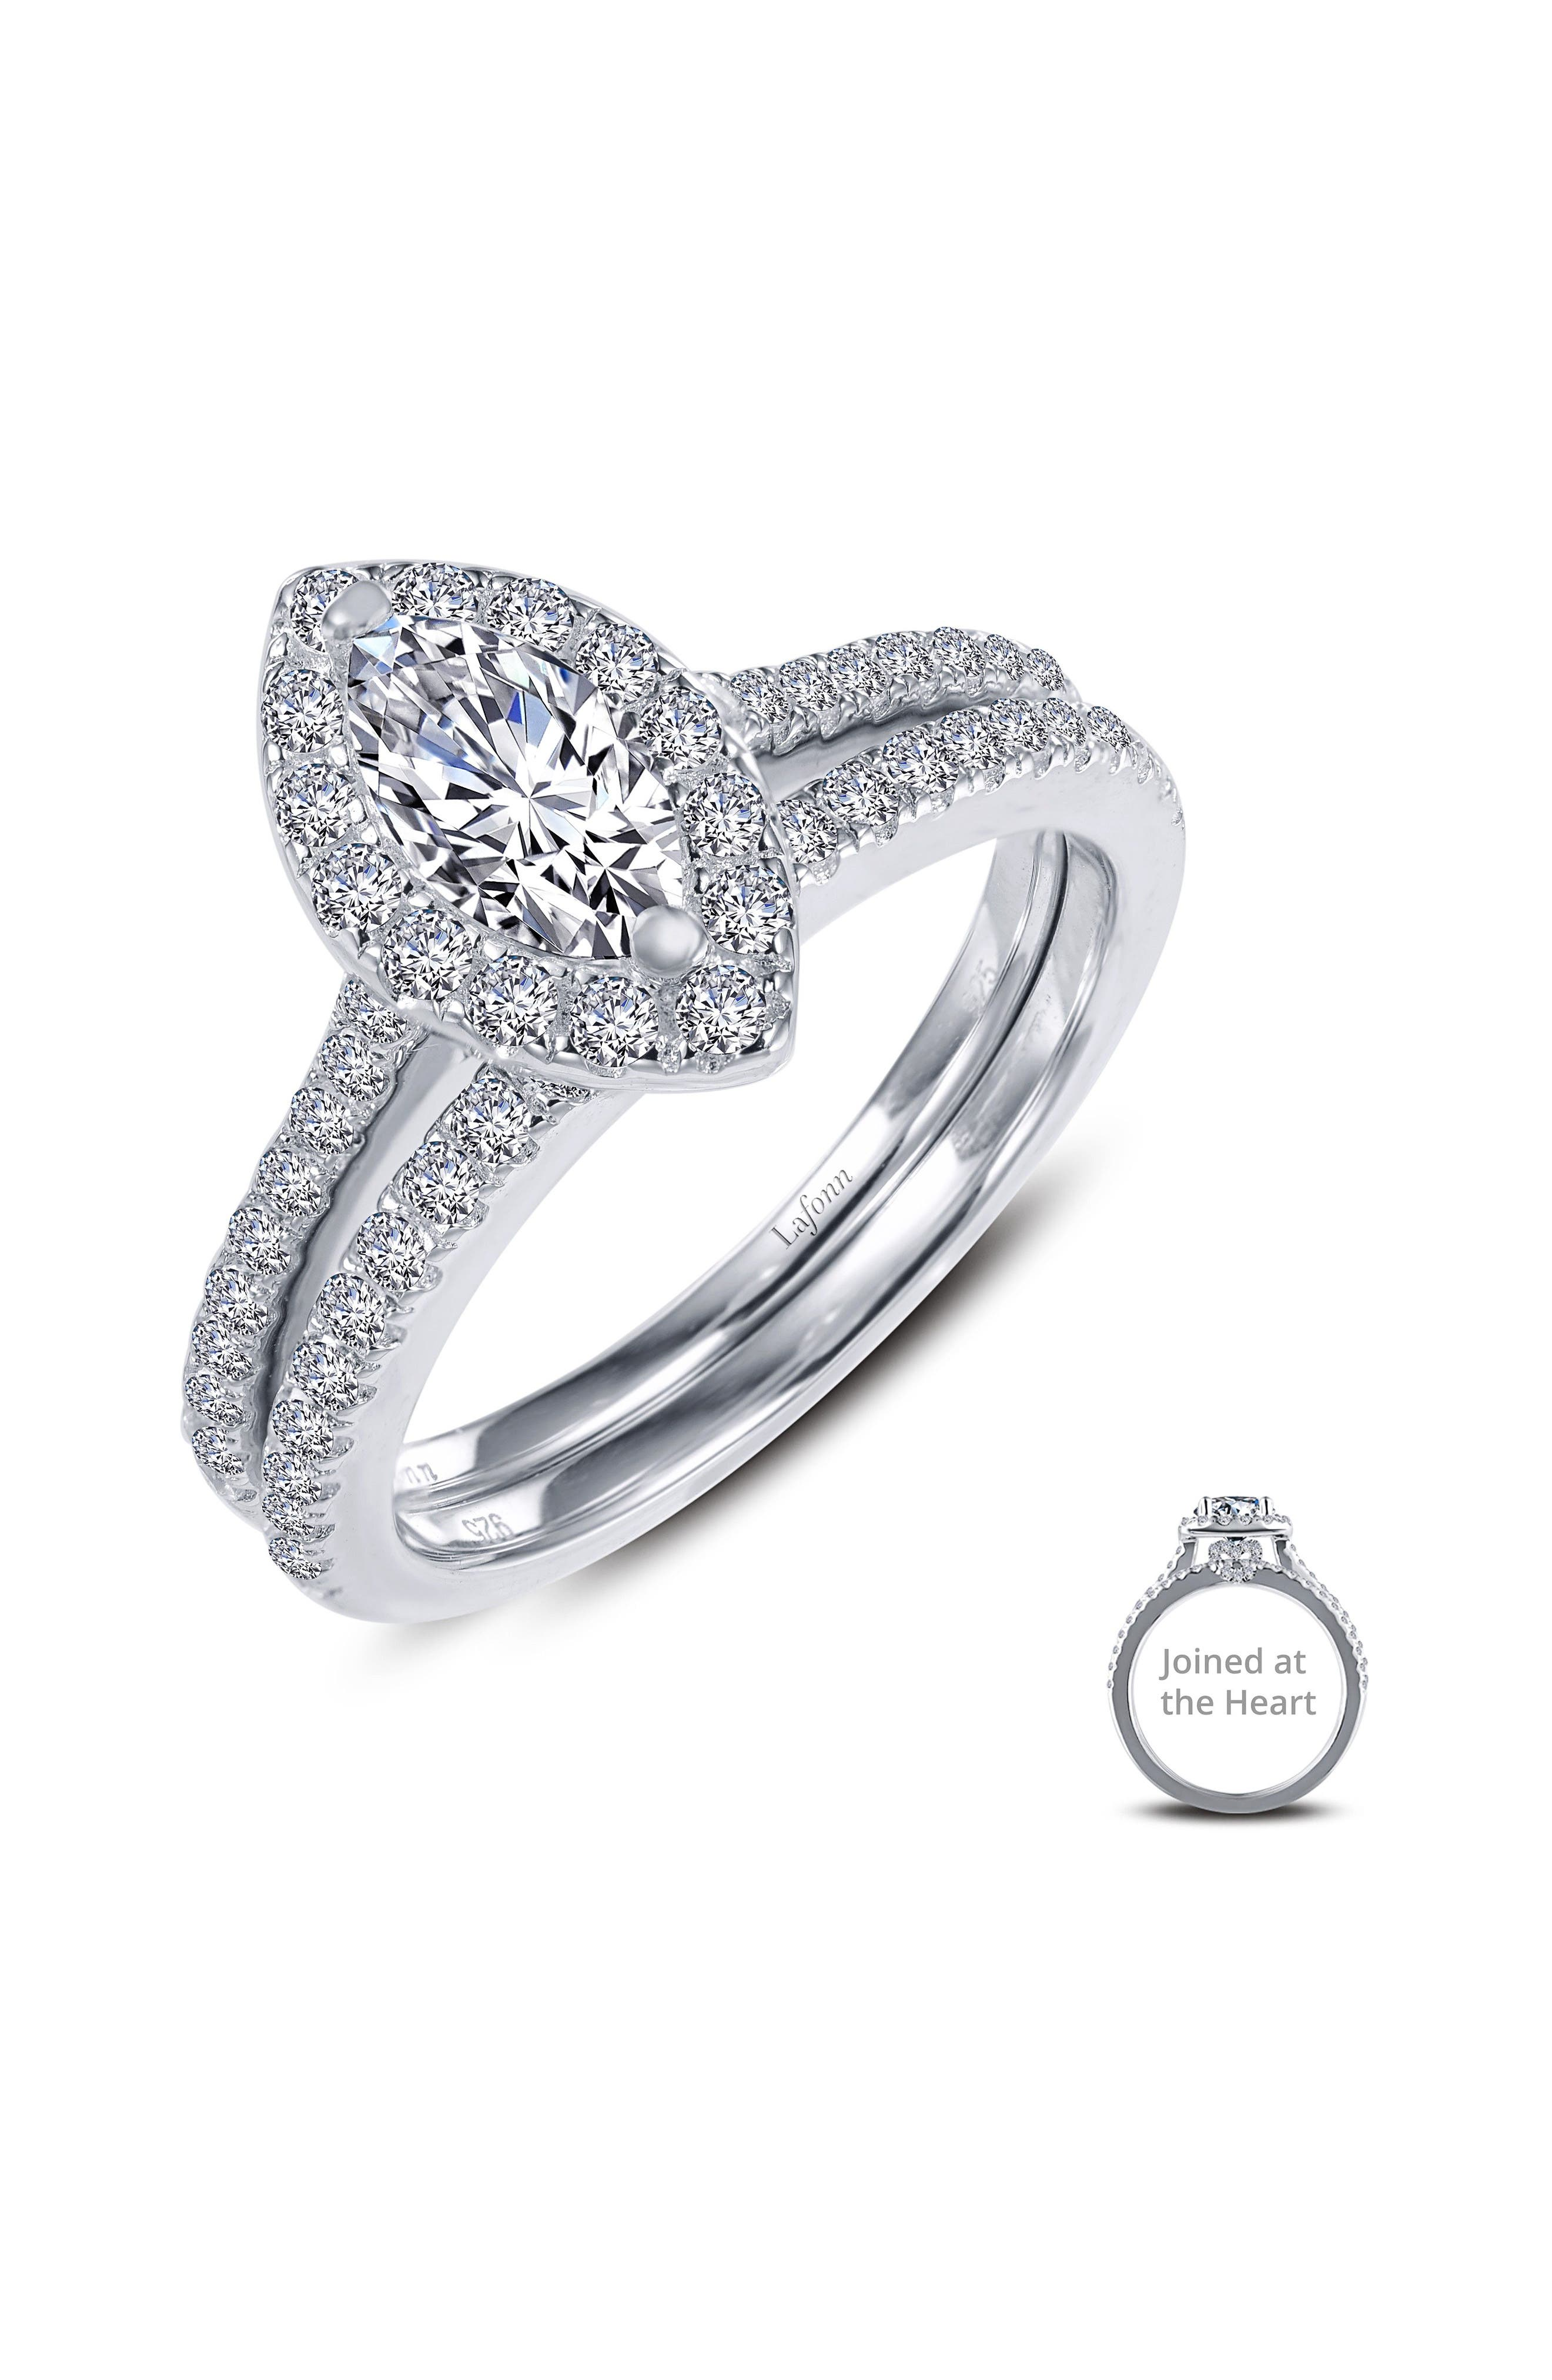 Joined at the Heart Marquise Halo Ring,                             Main thumbnail 1, color,                             SILVER/ CLEAR